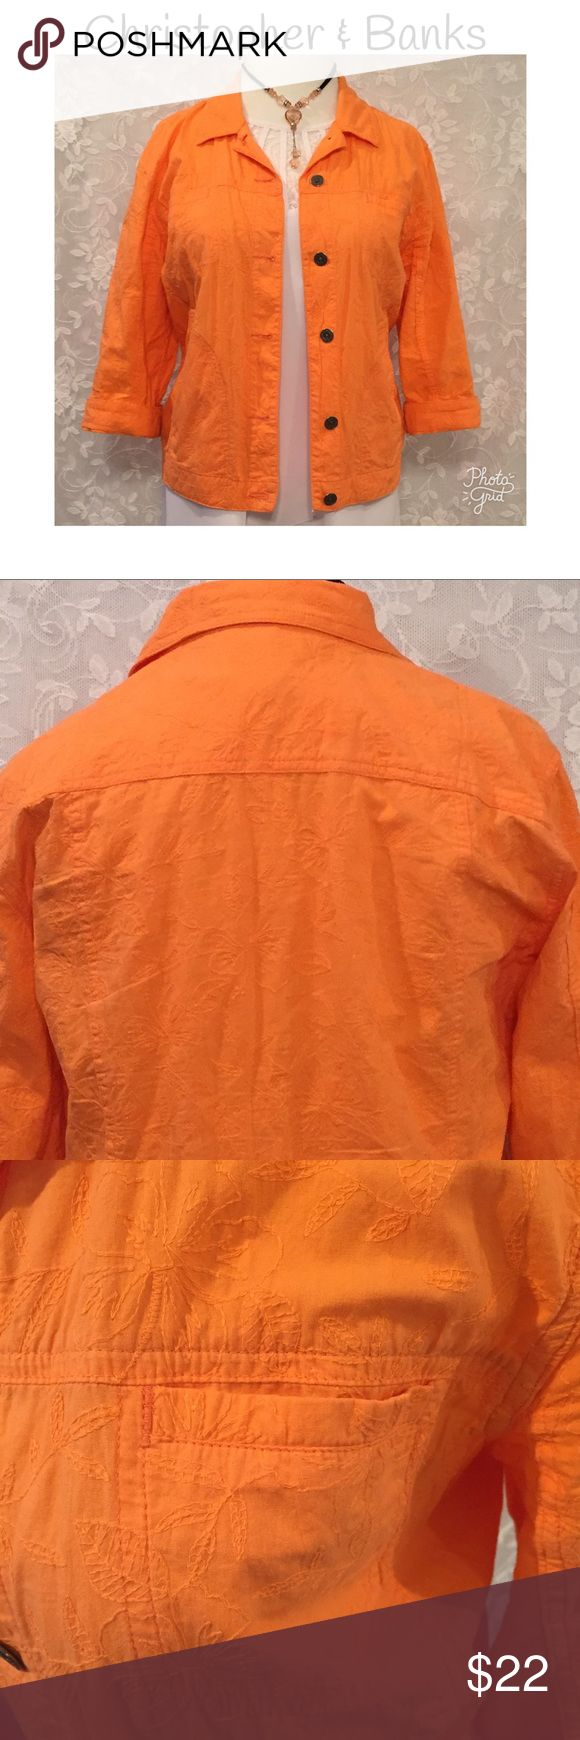 "CHRISTOPHER & BANKS ORANGE COLOR JEAN JACKET STYLE Christopher & Banks jean jacket style! Orange color. 3/4 sleeve length. 6 buttons down the front. Beautiful stitched floral fabric. Fabric is100% cotton. Measurement: chest-44"", waist-42"", bottom-44"", length-24"", sleeve length 18"". Bottom of jacket can be made smaller with adjustable buttons...see pictures. Sleeve can be folded up once to measure 15"" length. 2 chest pockets on each side.  2 side faux pockets.  Excellent used condition…"